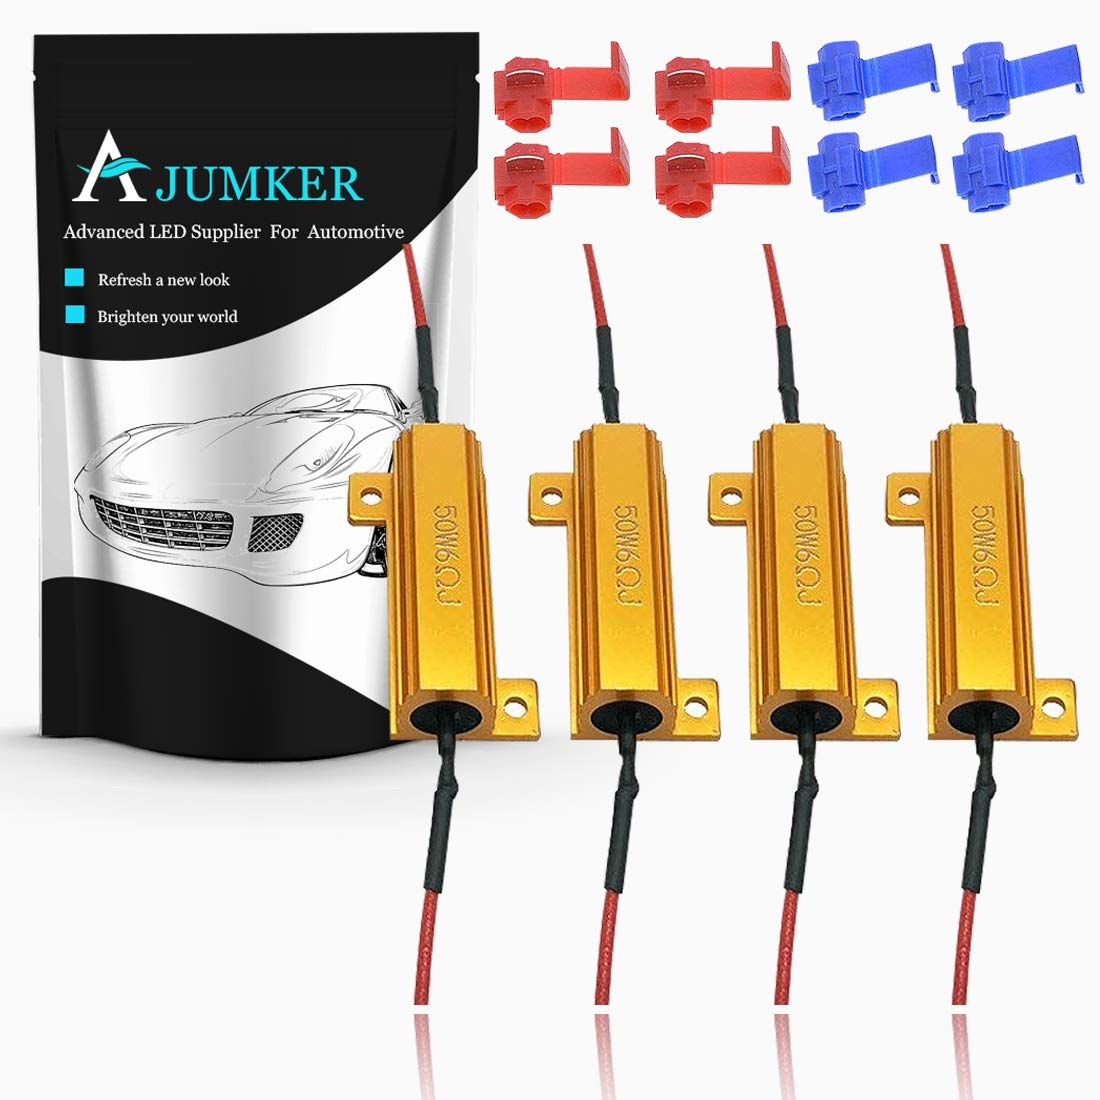 Fix Hyper Flash /& Warning Cancellor with 8pcs Quick Wire Clips AJUMKER 4pcs 50W 6-ohm Load Resistors for LED Turn Signal Lights or LED License Plate Lights or DRL